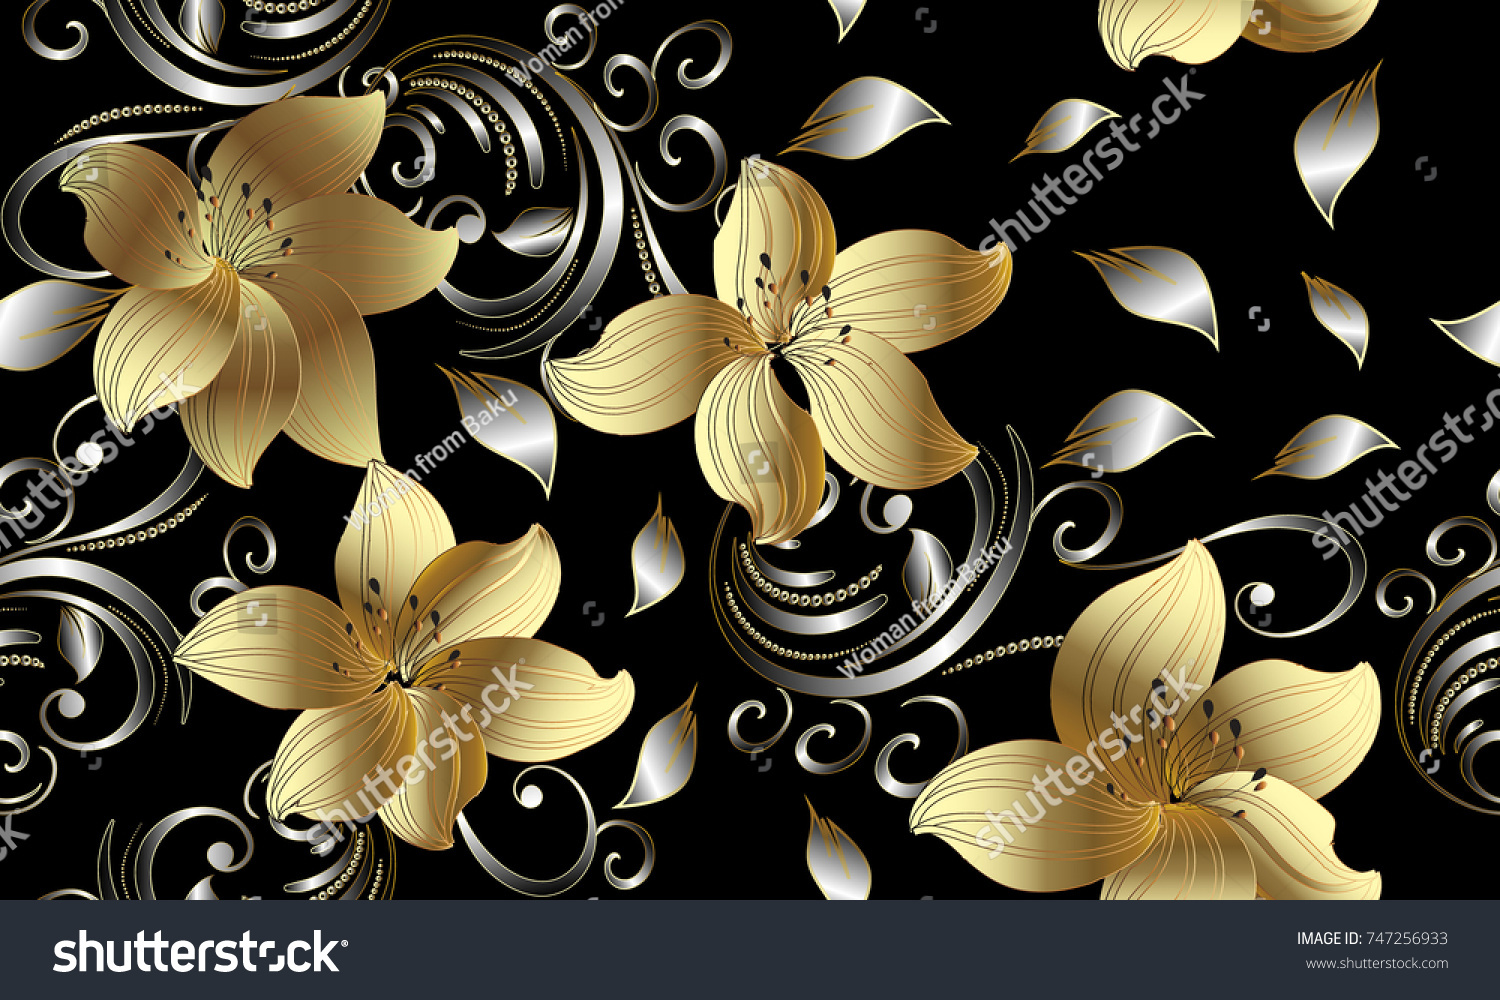 3d Golden Flowers Seamless Pattern Floral Background Vintage Wallpaper Swirl Line Art